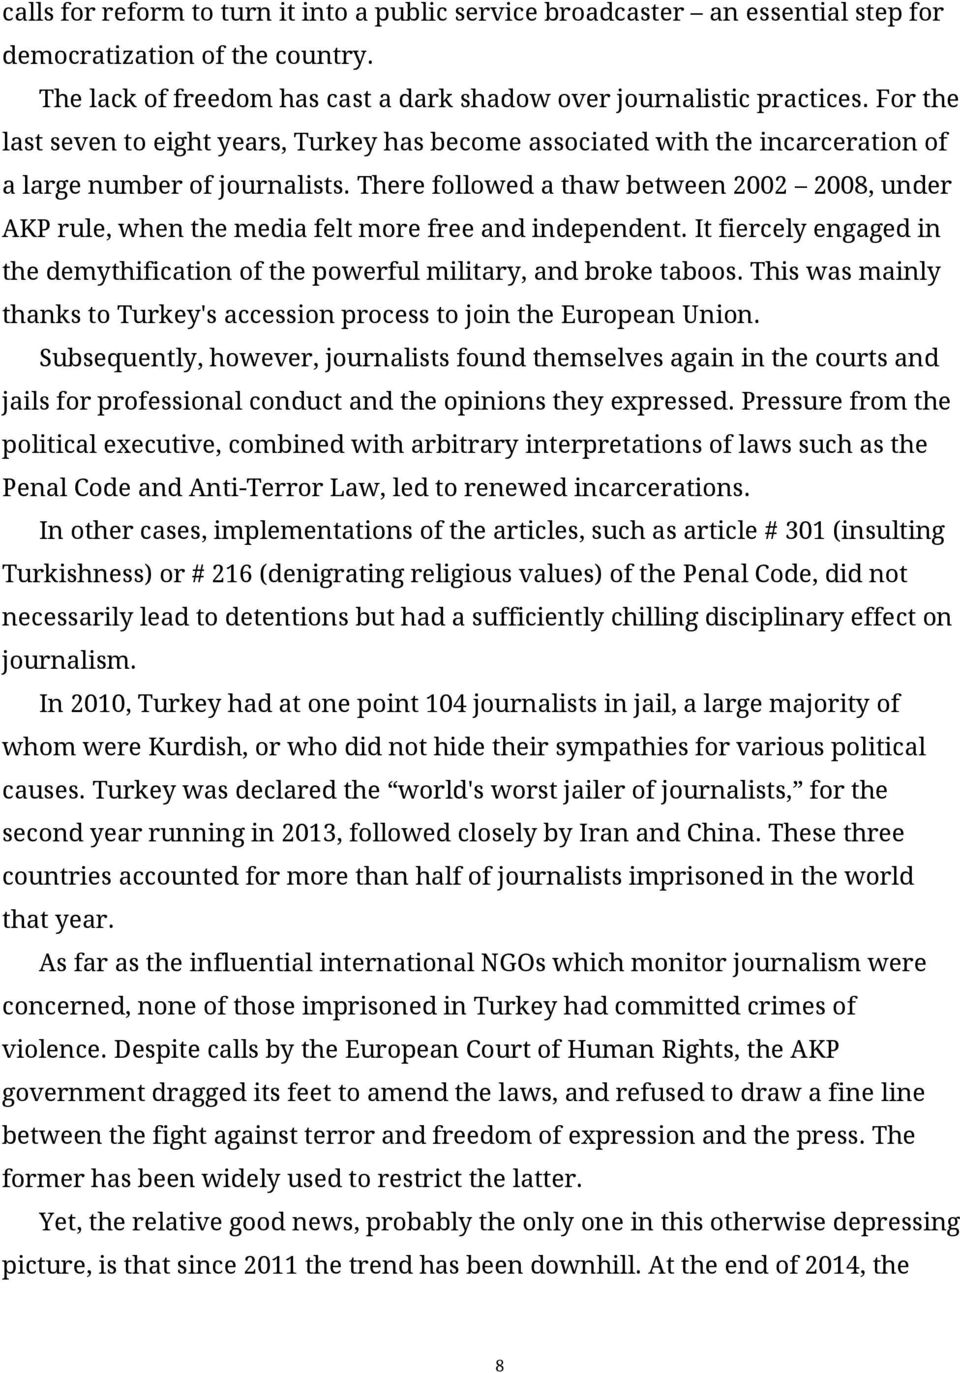 There followed a thaw between 2002 2008, under AKP rule, when the media felt more free and independent. It fiercely engaged in the demythification of the powerful military, and broke taboos.